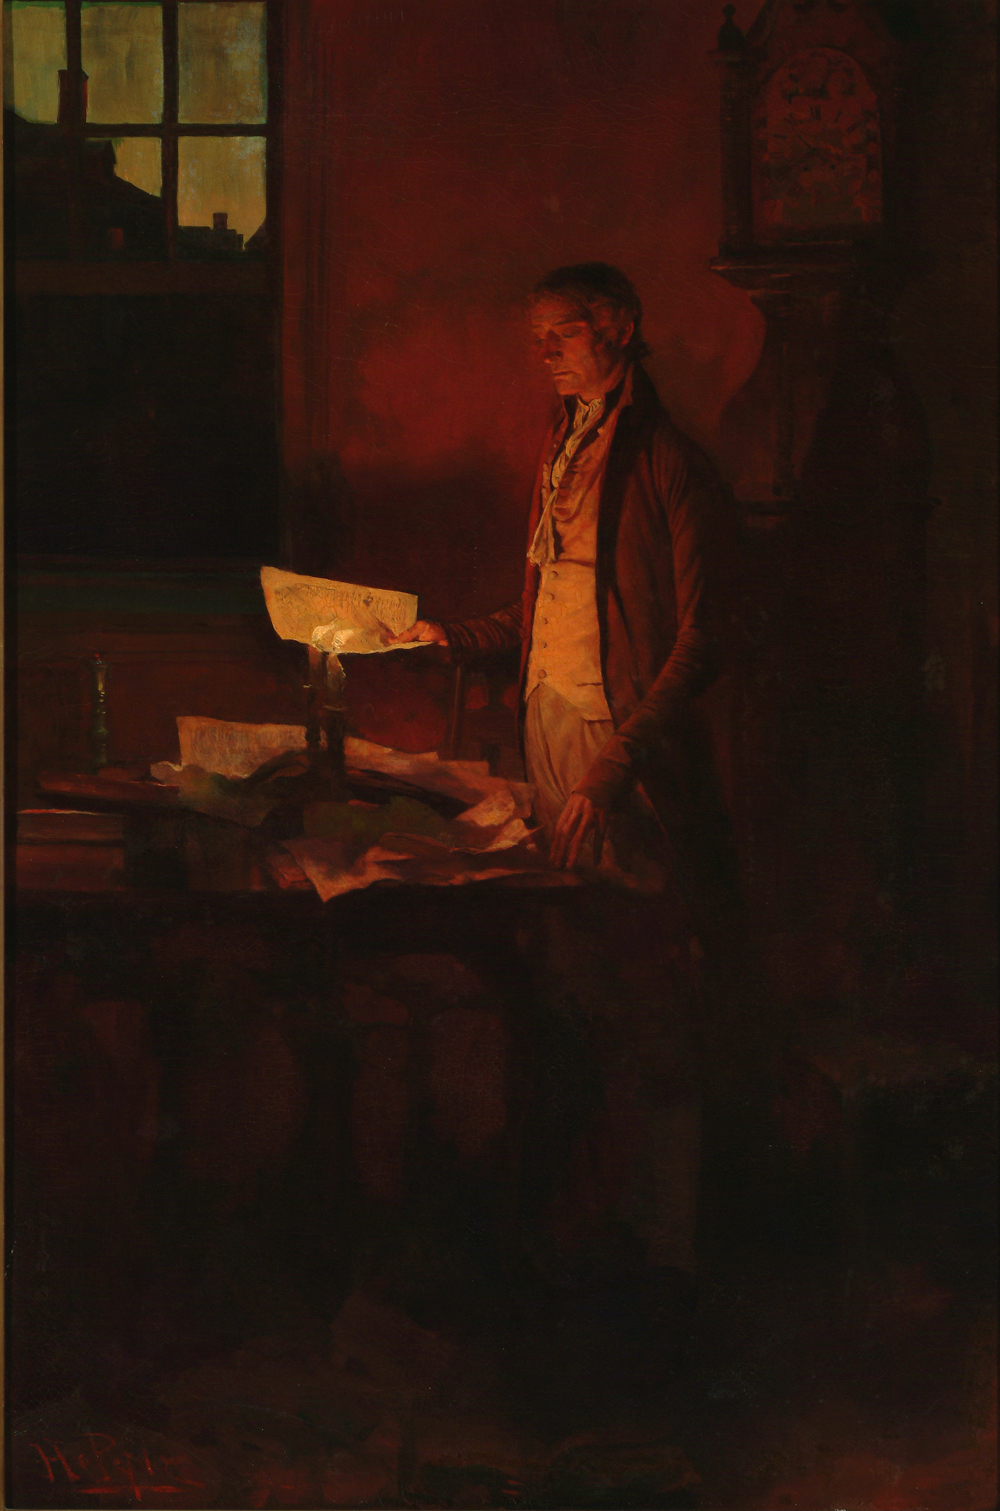 Jefferson writing the Declaration of Independence.